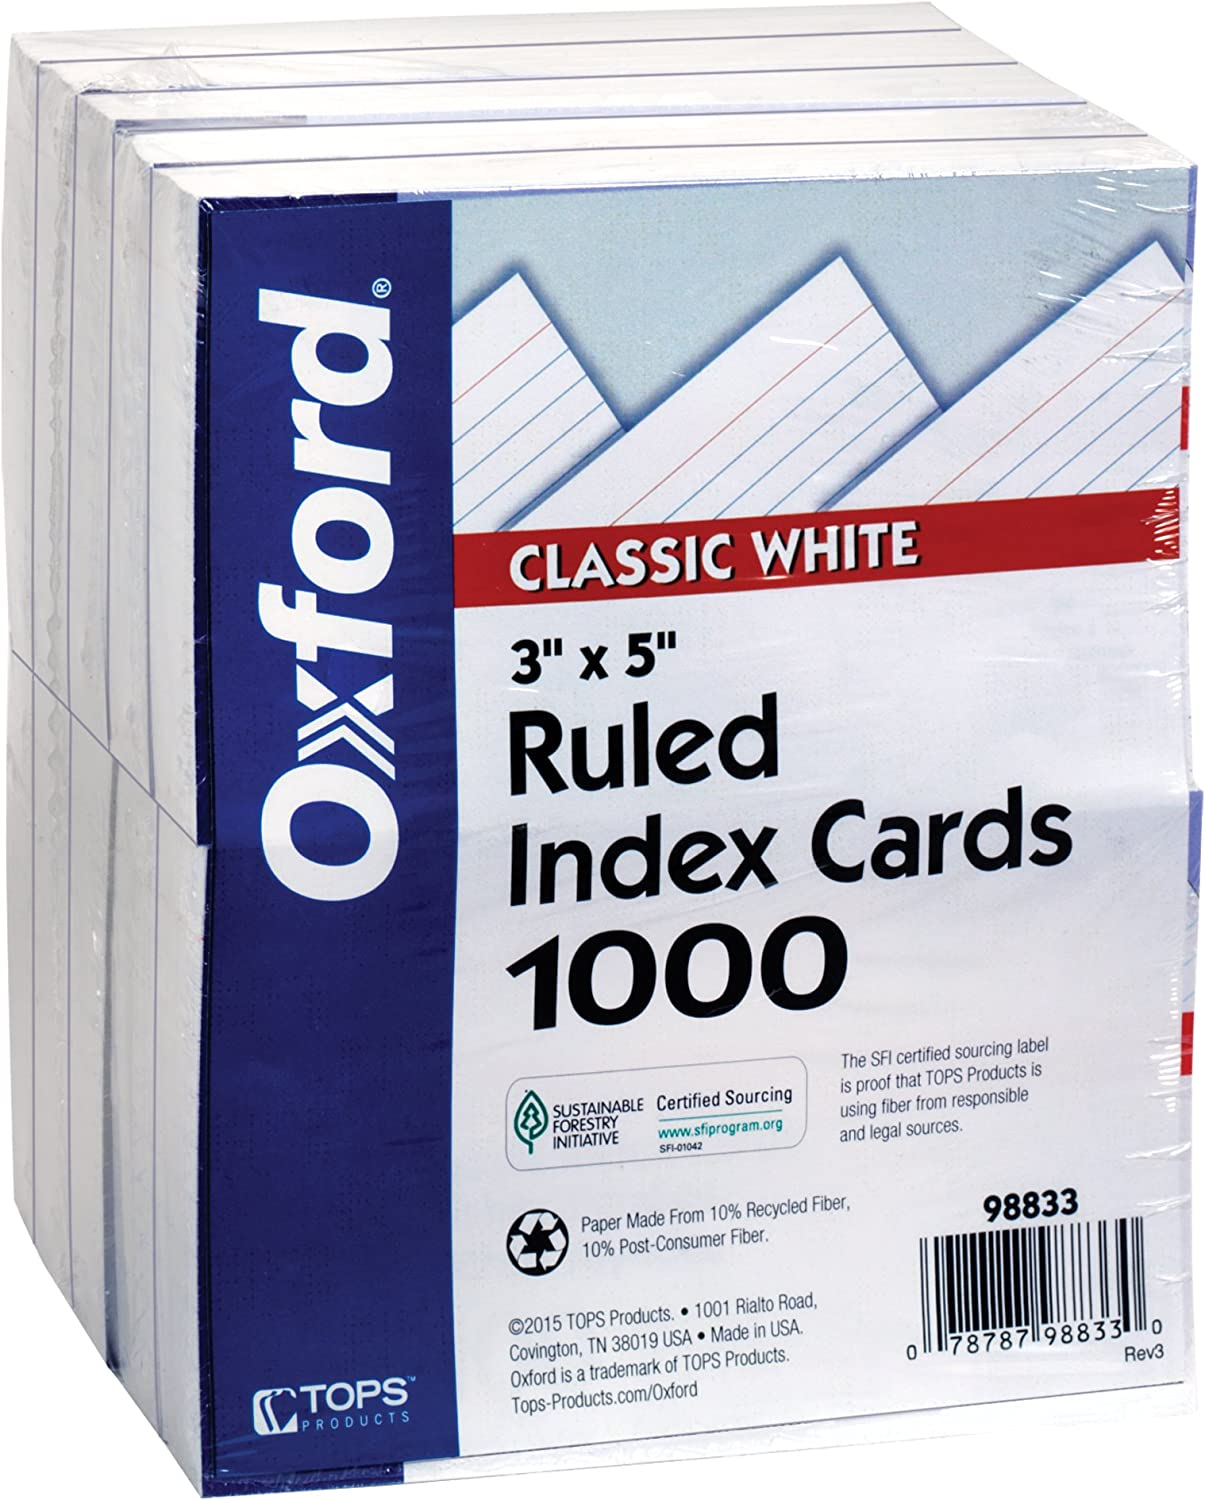 Product of Oxford Ruled White Index Popular overseas Cards 5